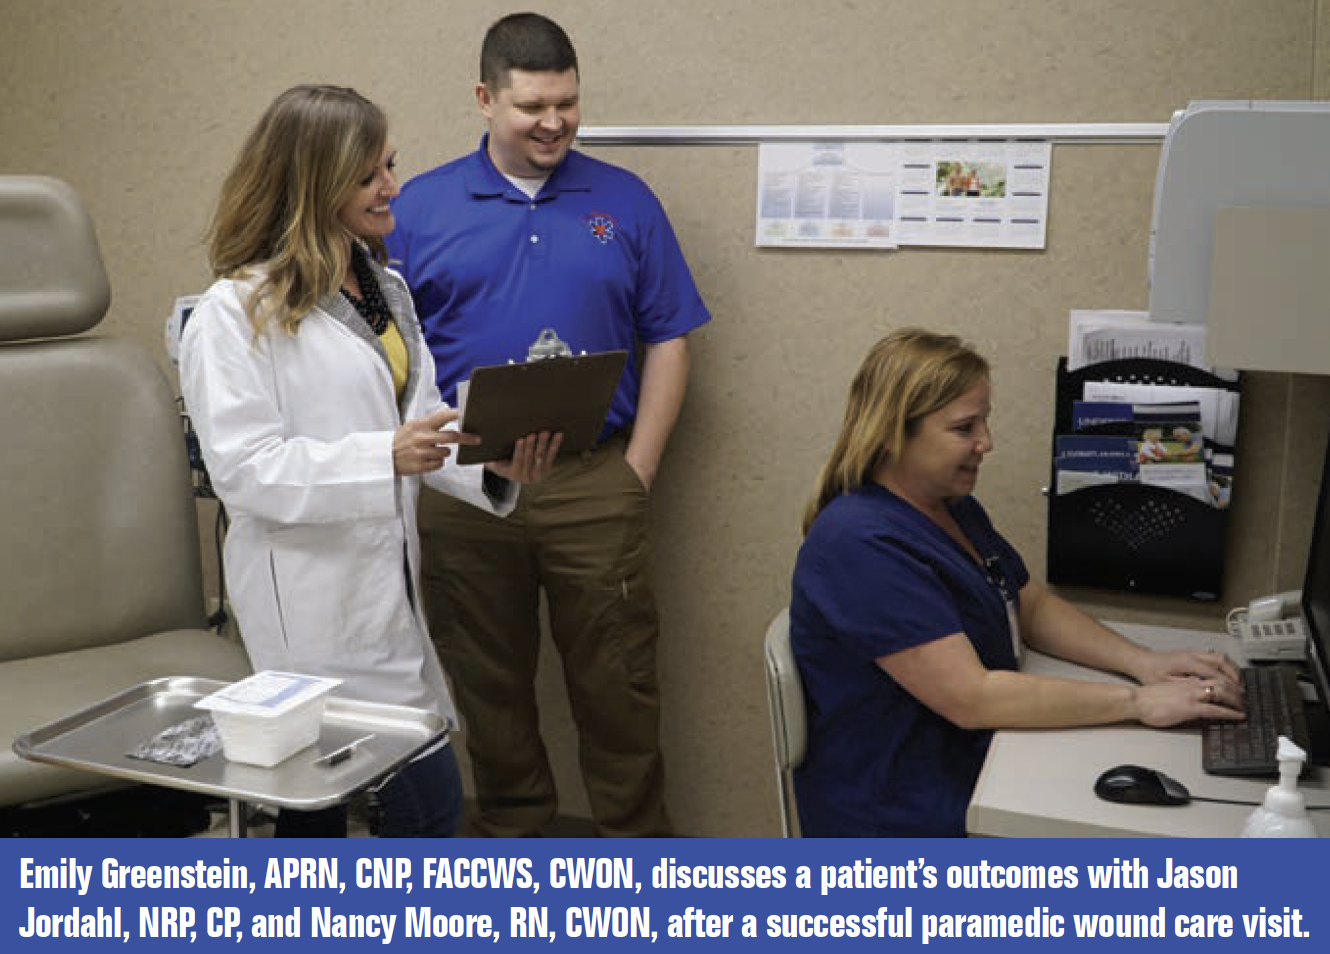 Emily Greenstein, APRN, CNP, FACCWS, CWON, discusses a patient's outcomes with Jason Jordahl, NRP, CP, and Nancy Moore, RN, CWON, after a successful paramedic wound care visit.